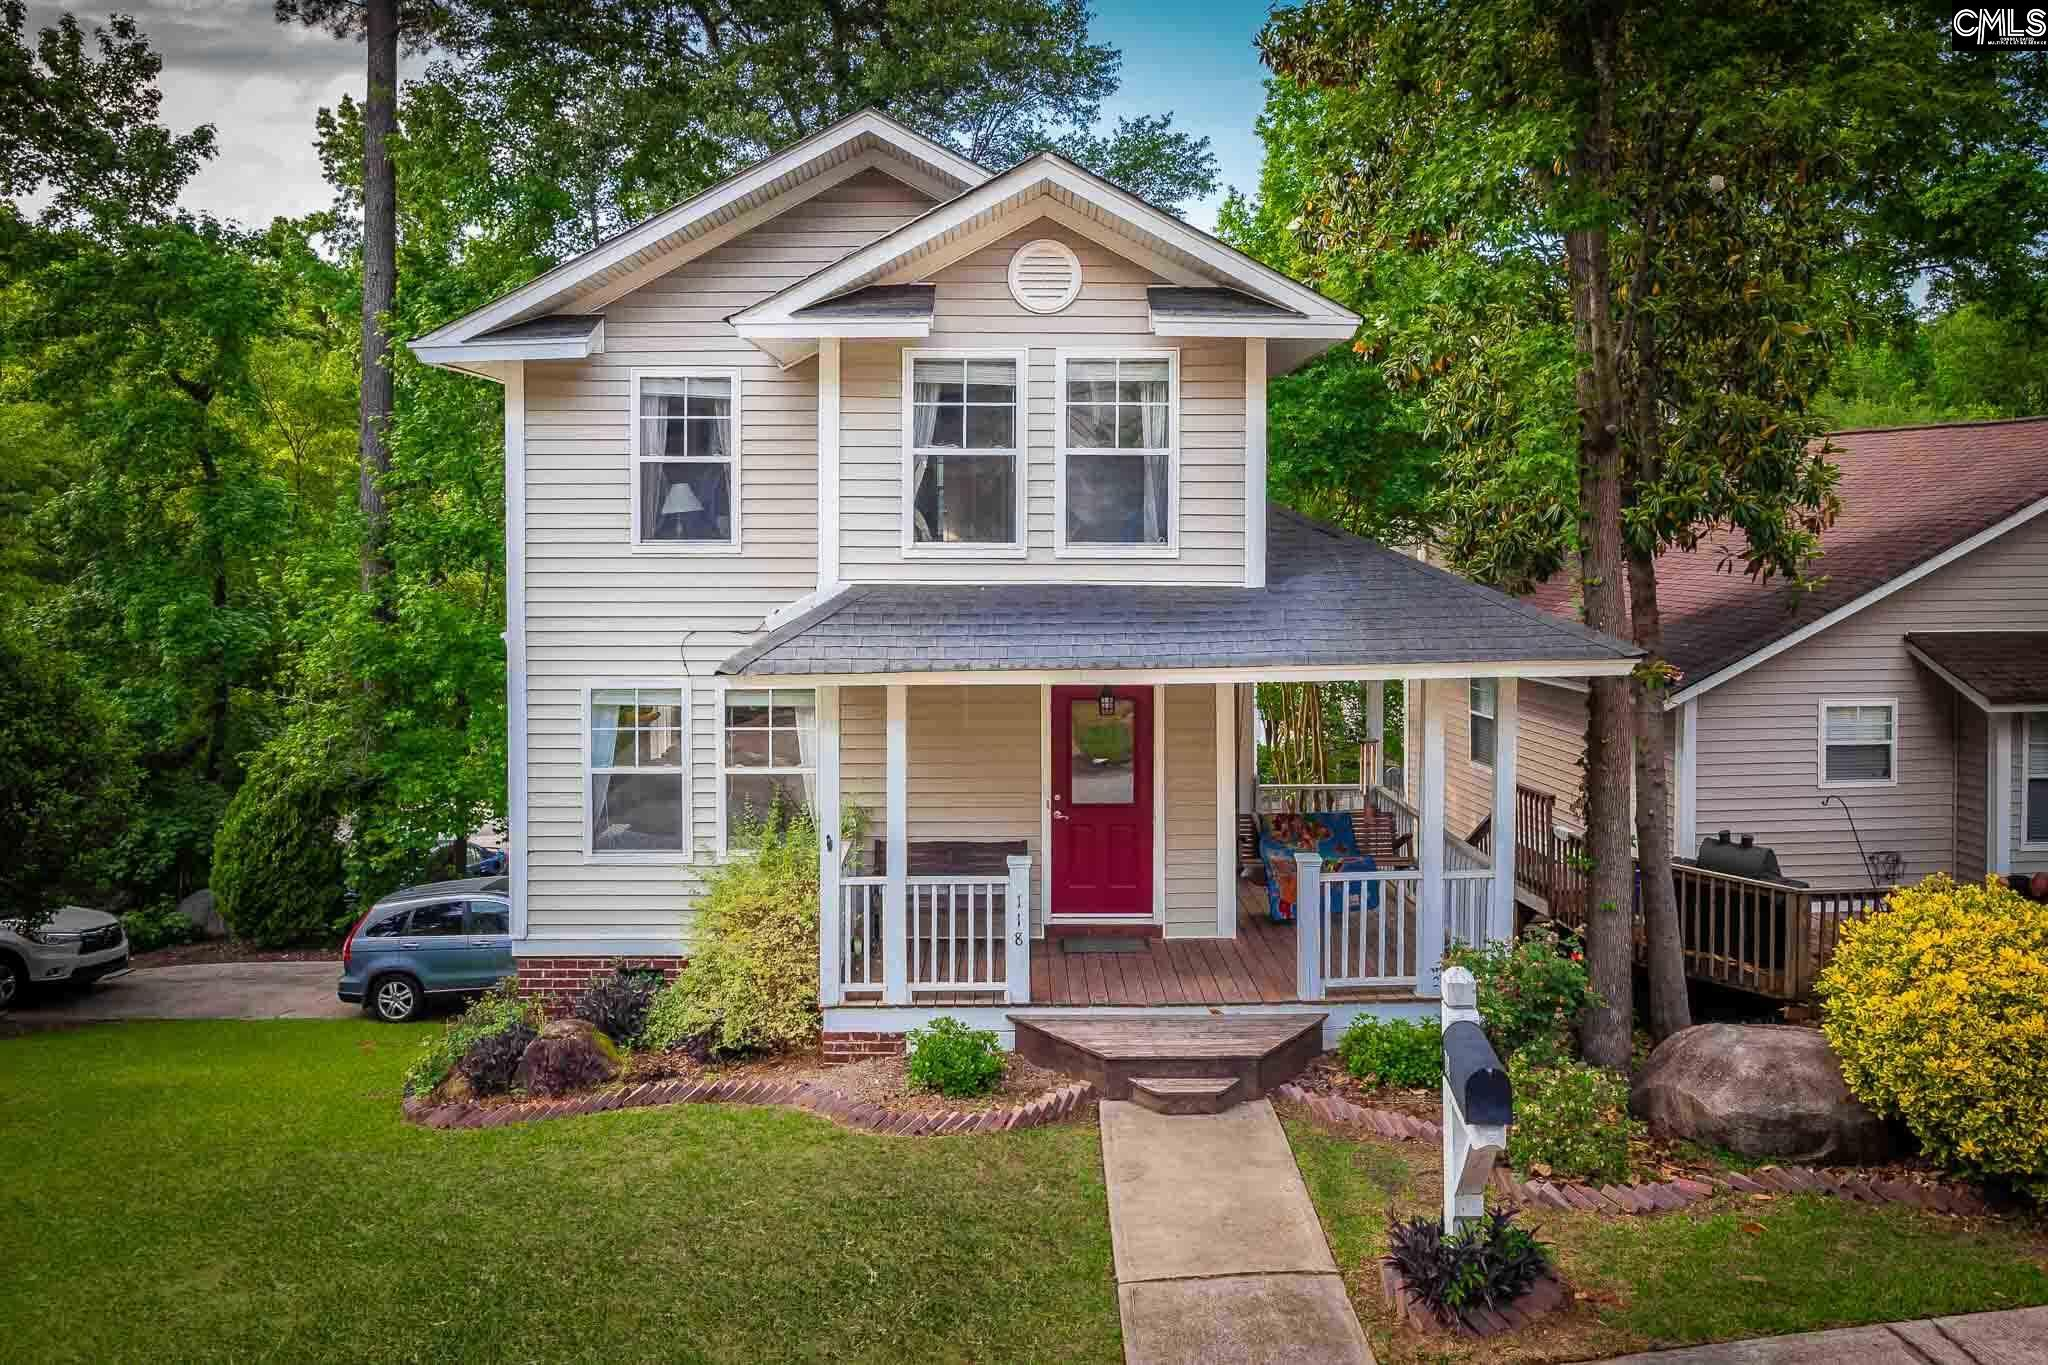 118 Candleberry Columbia, SC 29201